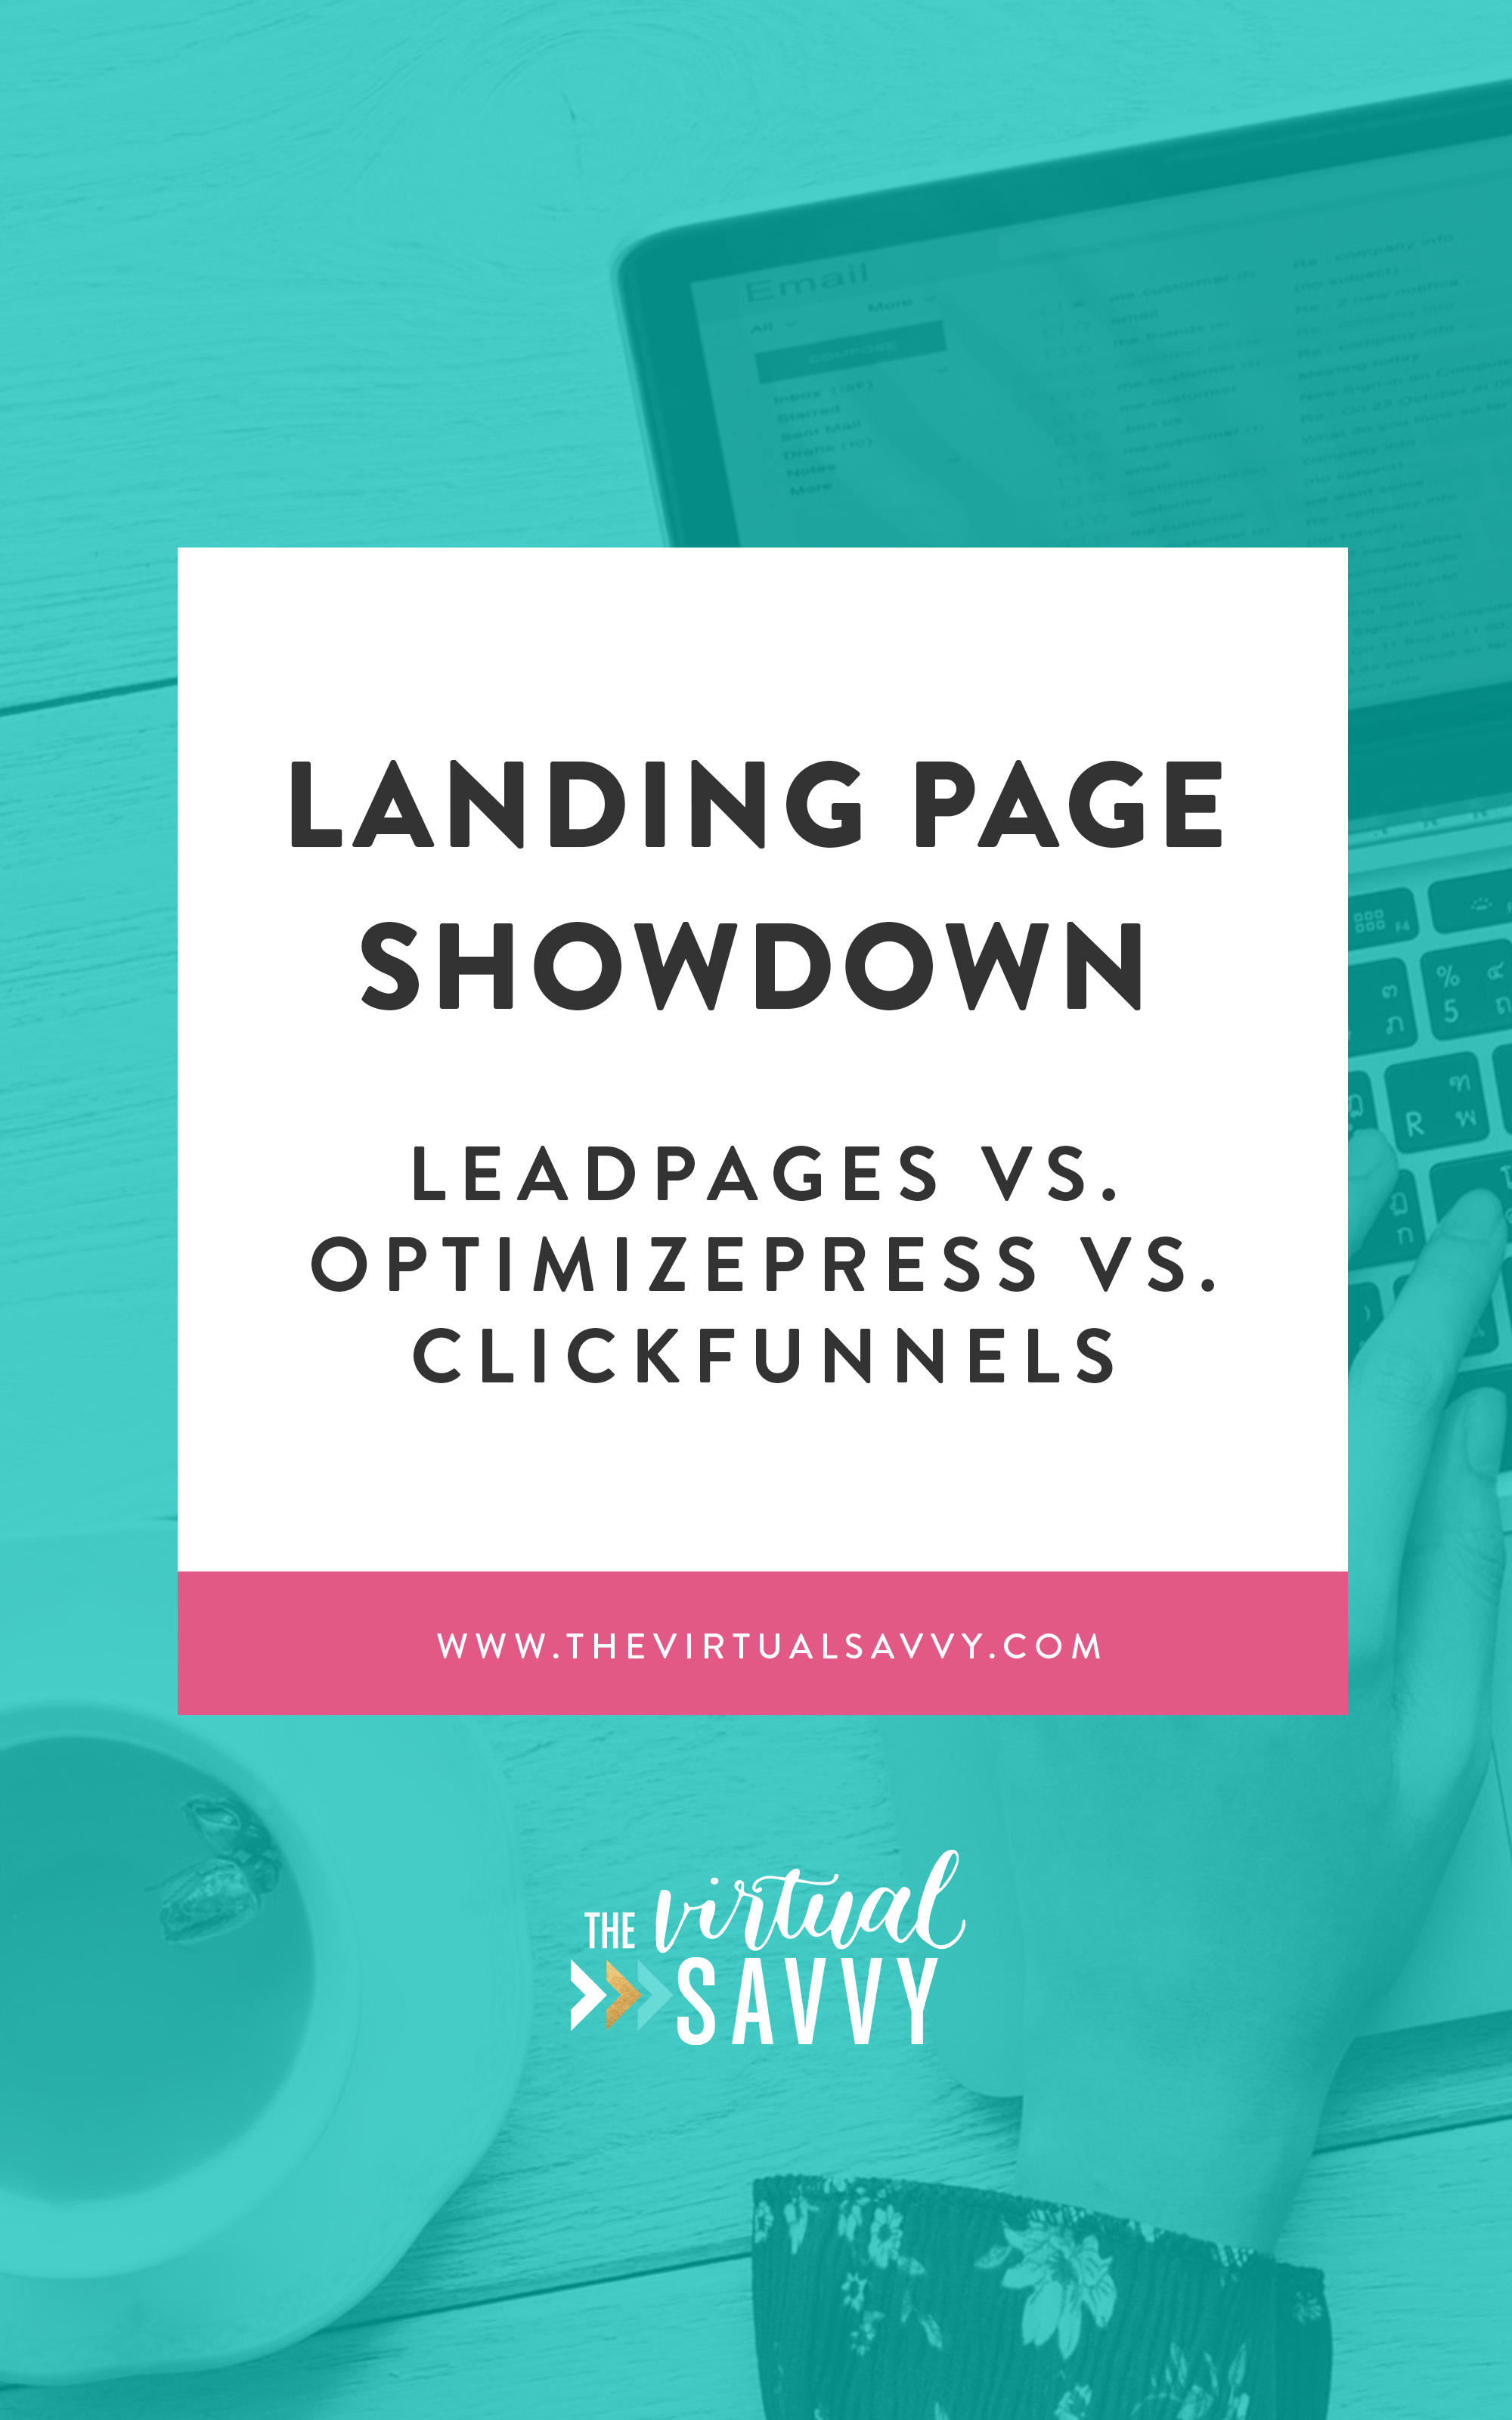 The Facts About Leadpages Vs Uncovered